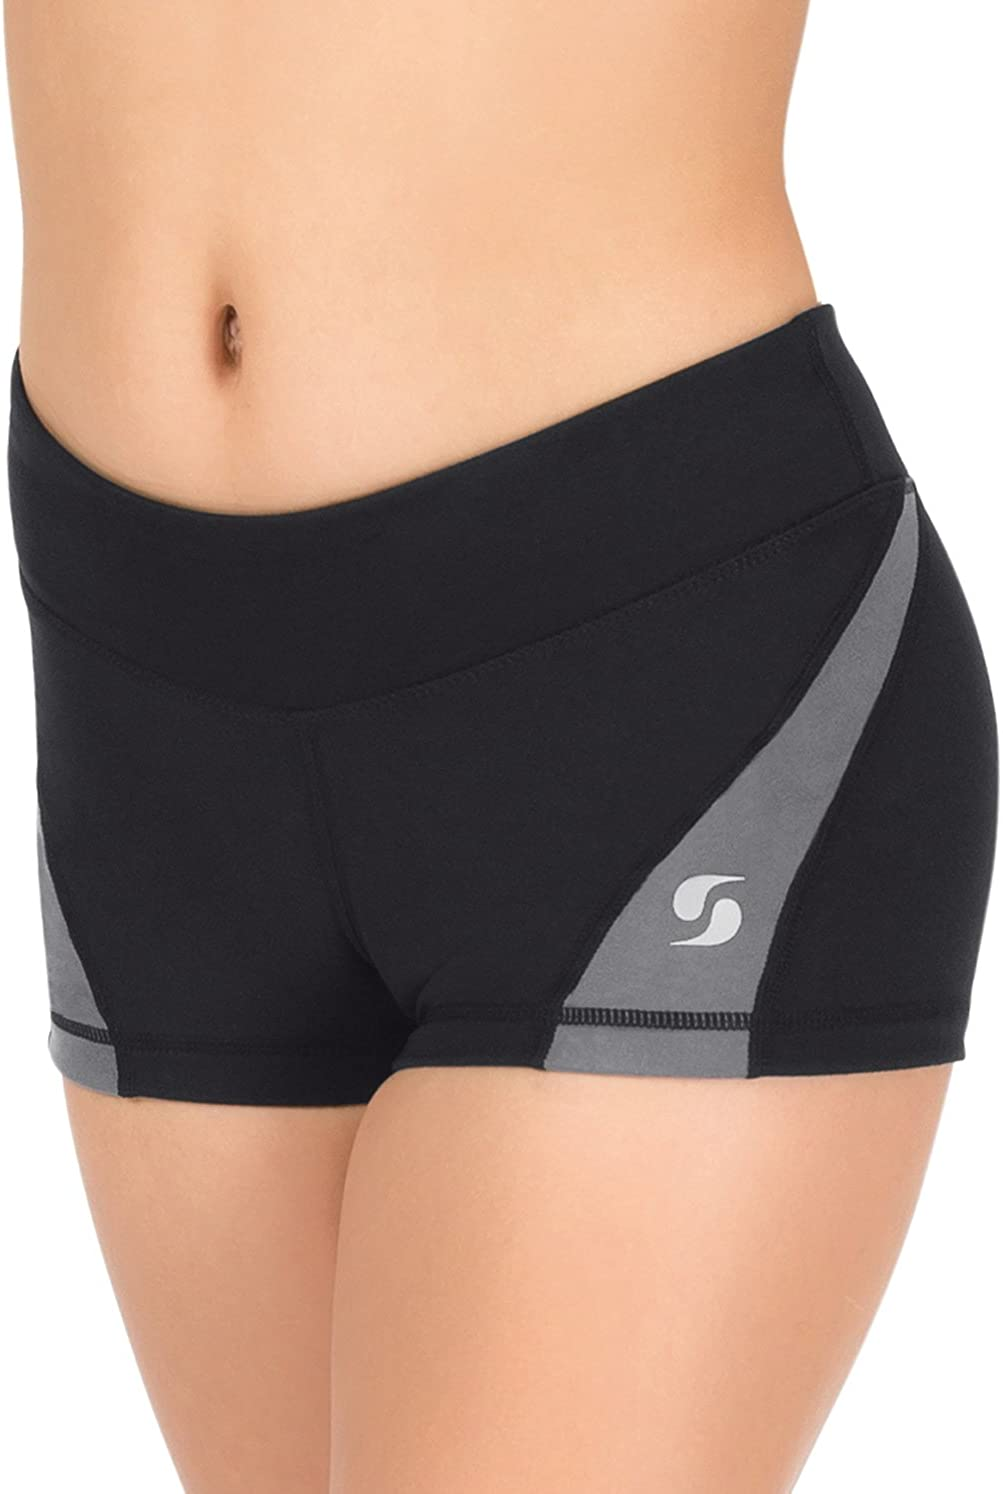 Recommendation Girls National products Colorblock Running Shorts Gunmetal Large 1180GBKGUL Black